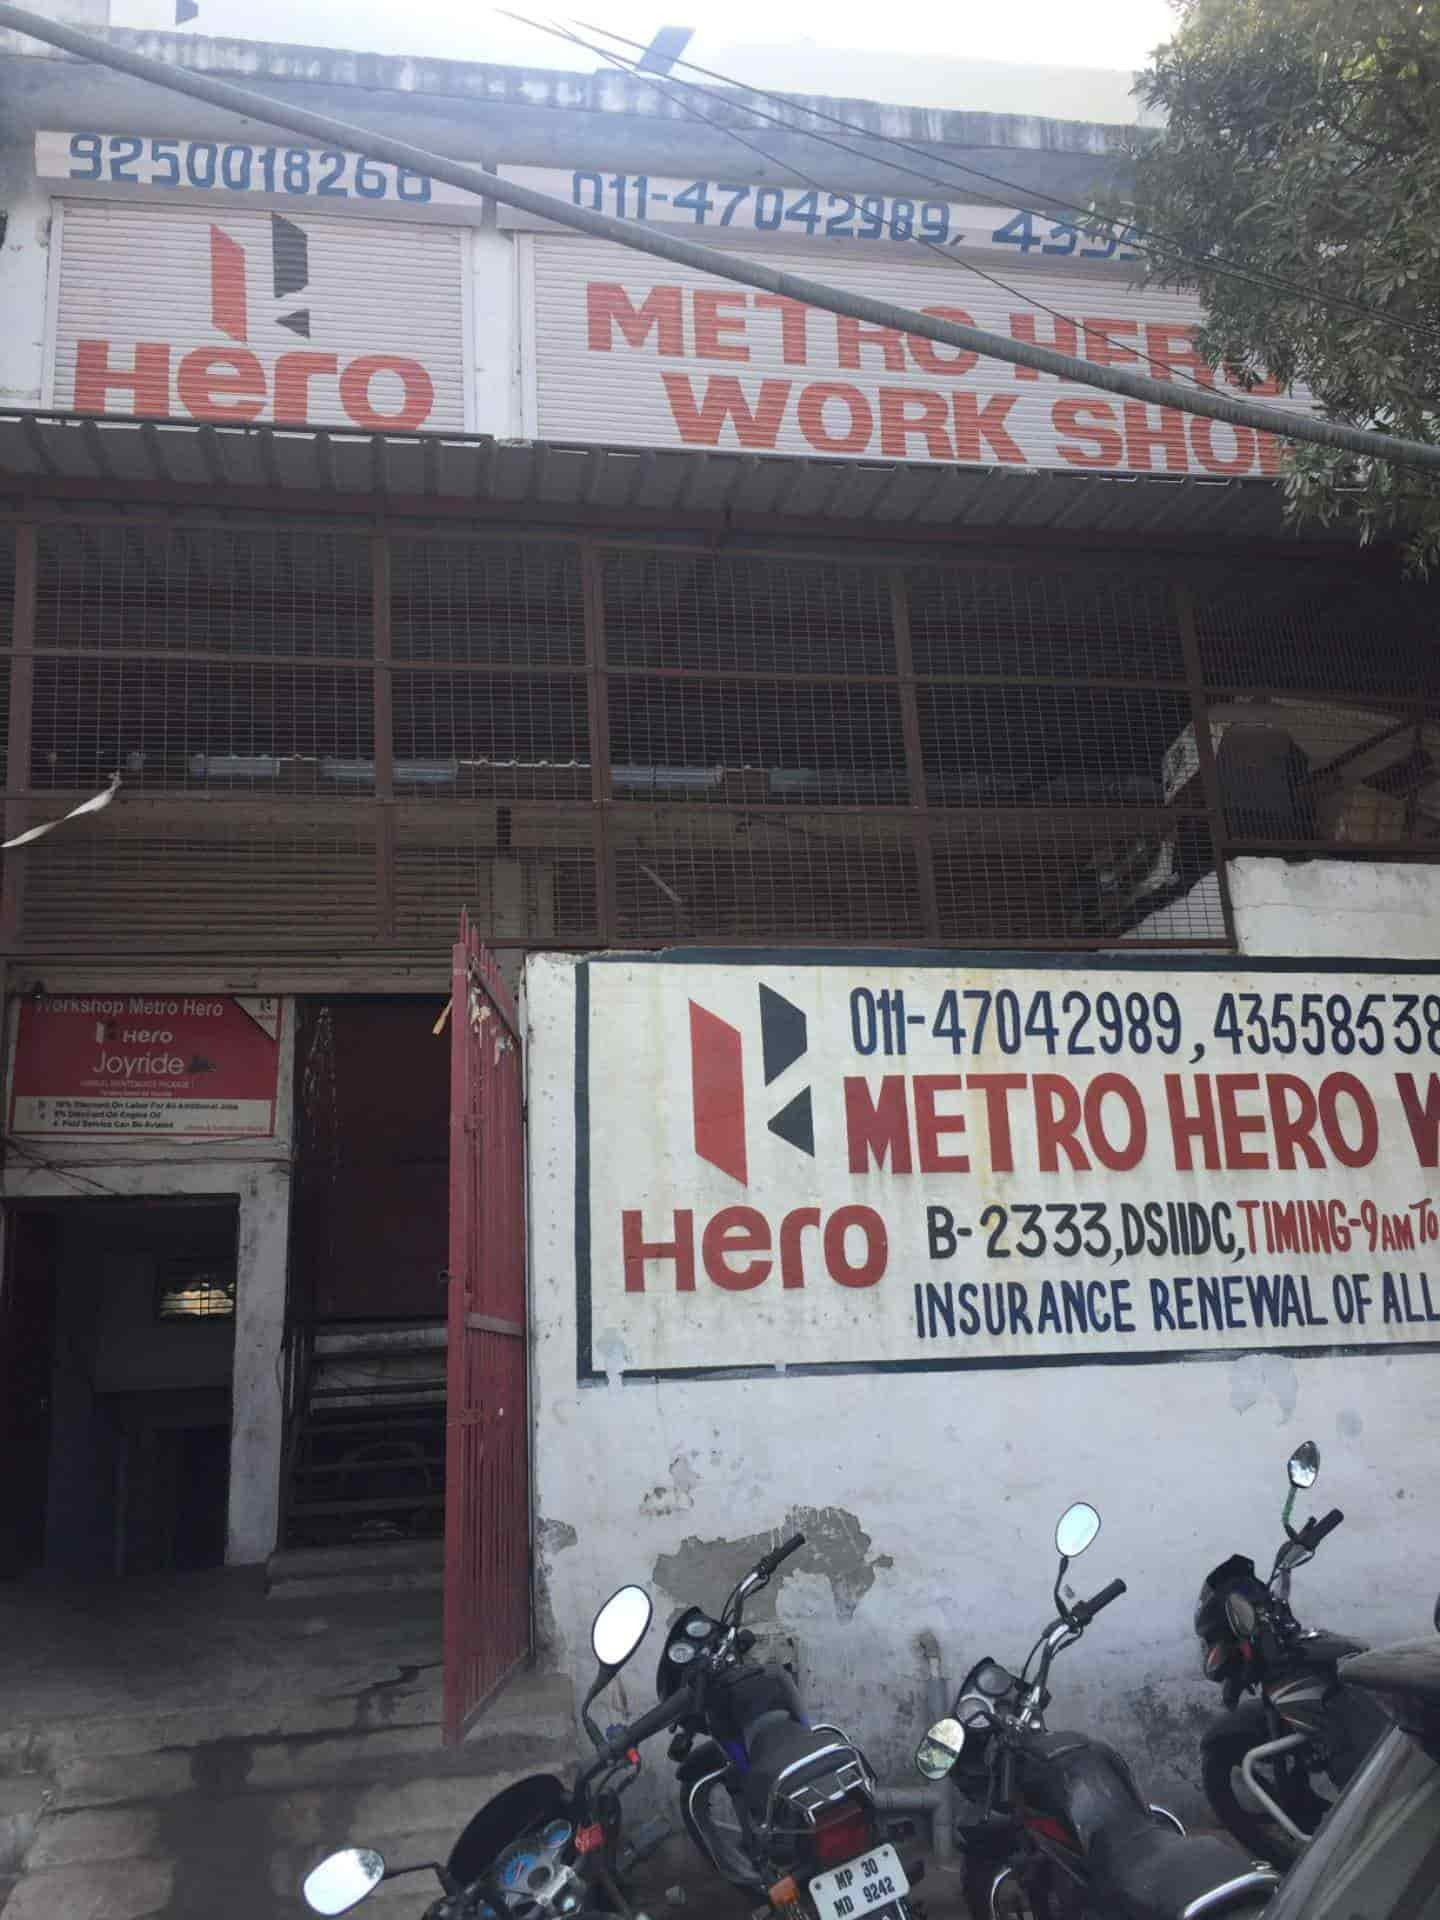 Metro Agencies, Bawana - Motorcycle Dealers-Hero in Delhi - Justdial